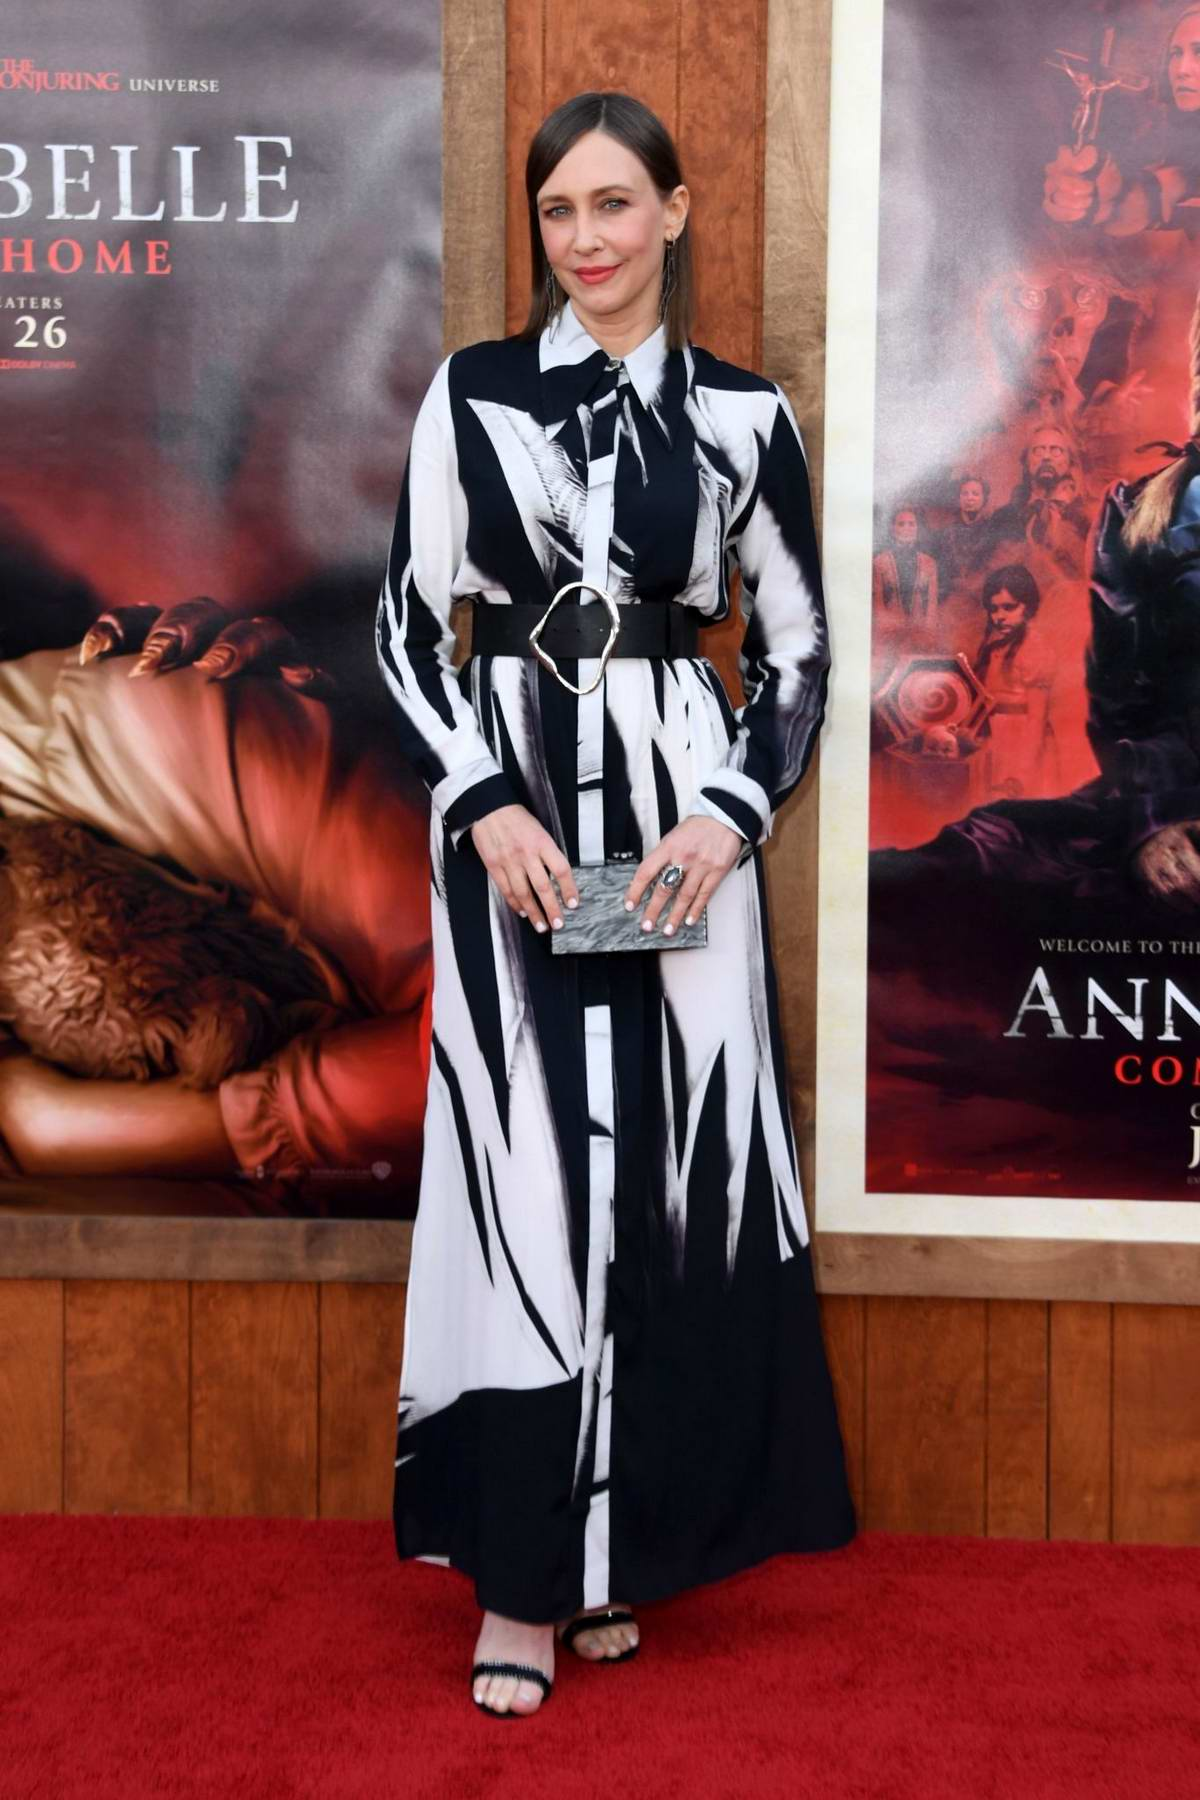 Vera Farmiga attends the World Premiere of 'Annabelle Comes Home' at the Regency Village Theatre in Los Angeles